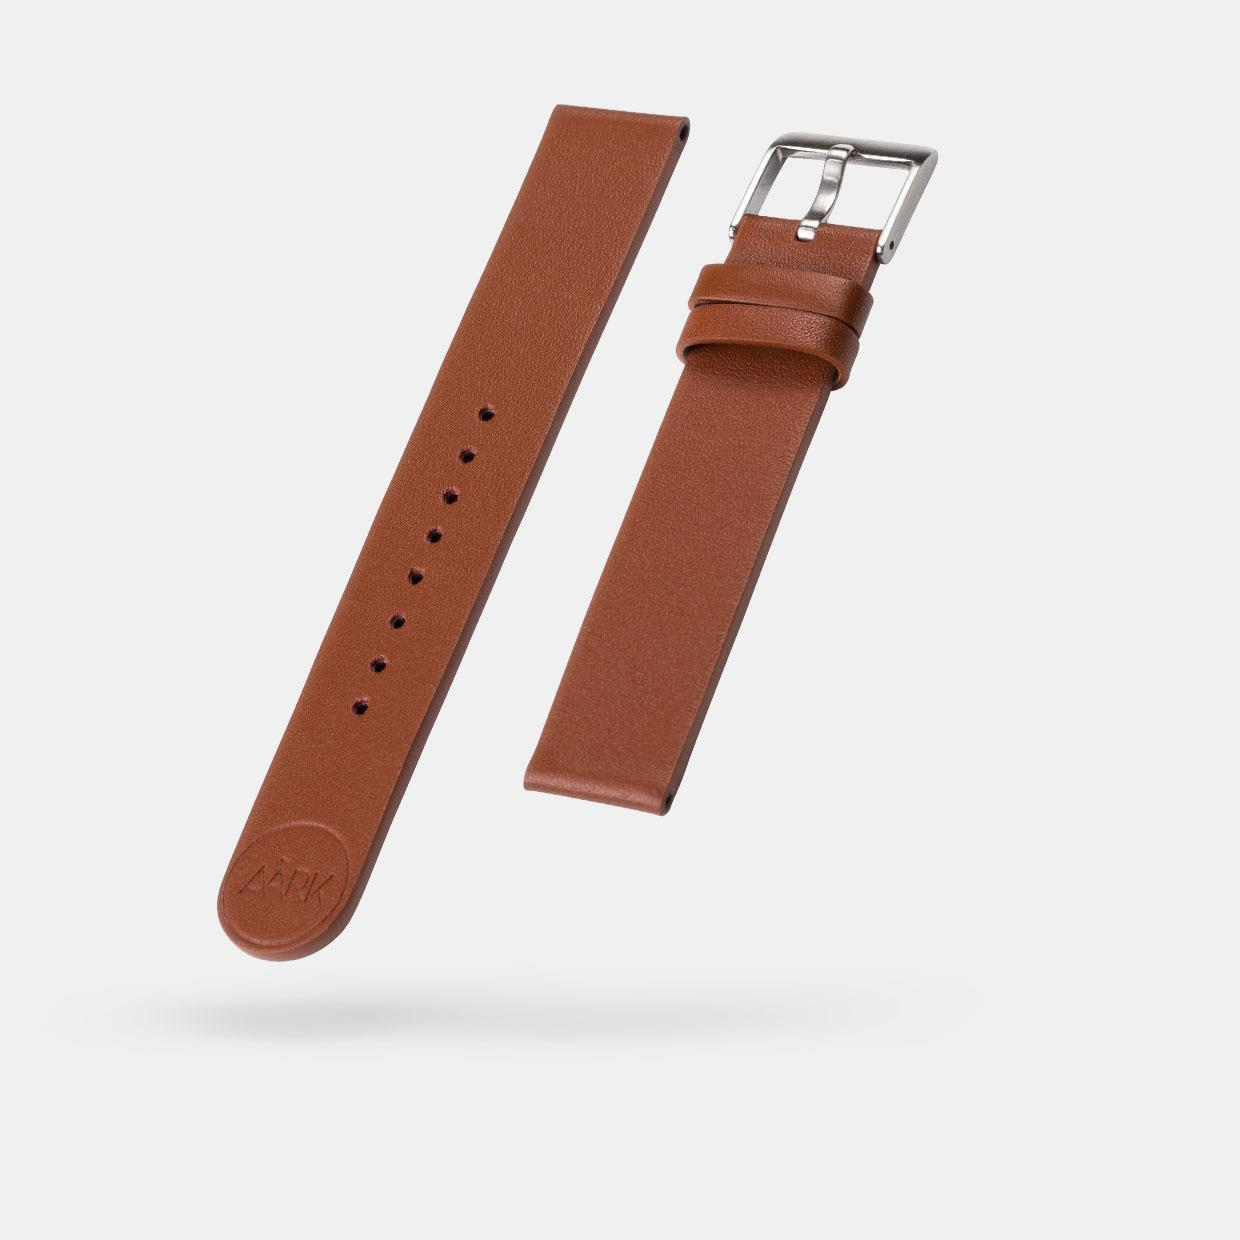 Smooth Tan Watch Strap 18mm Watch Strap AÃRK Collective - der ZEITGEIST